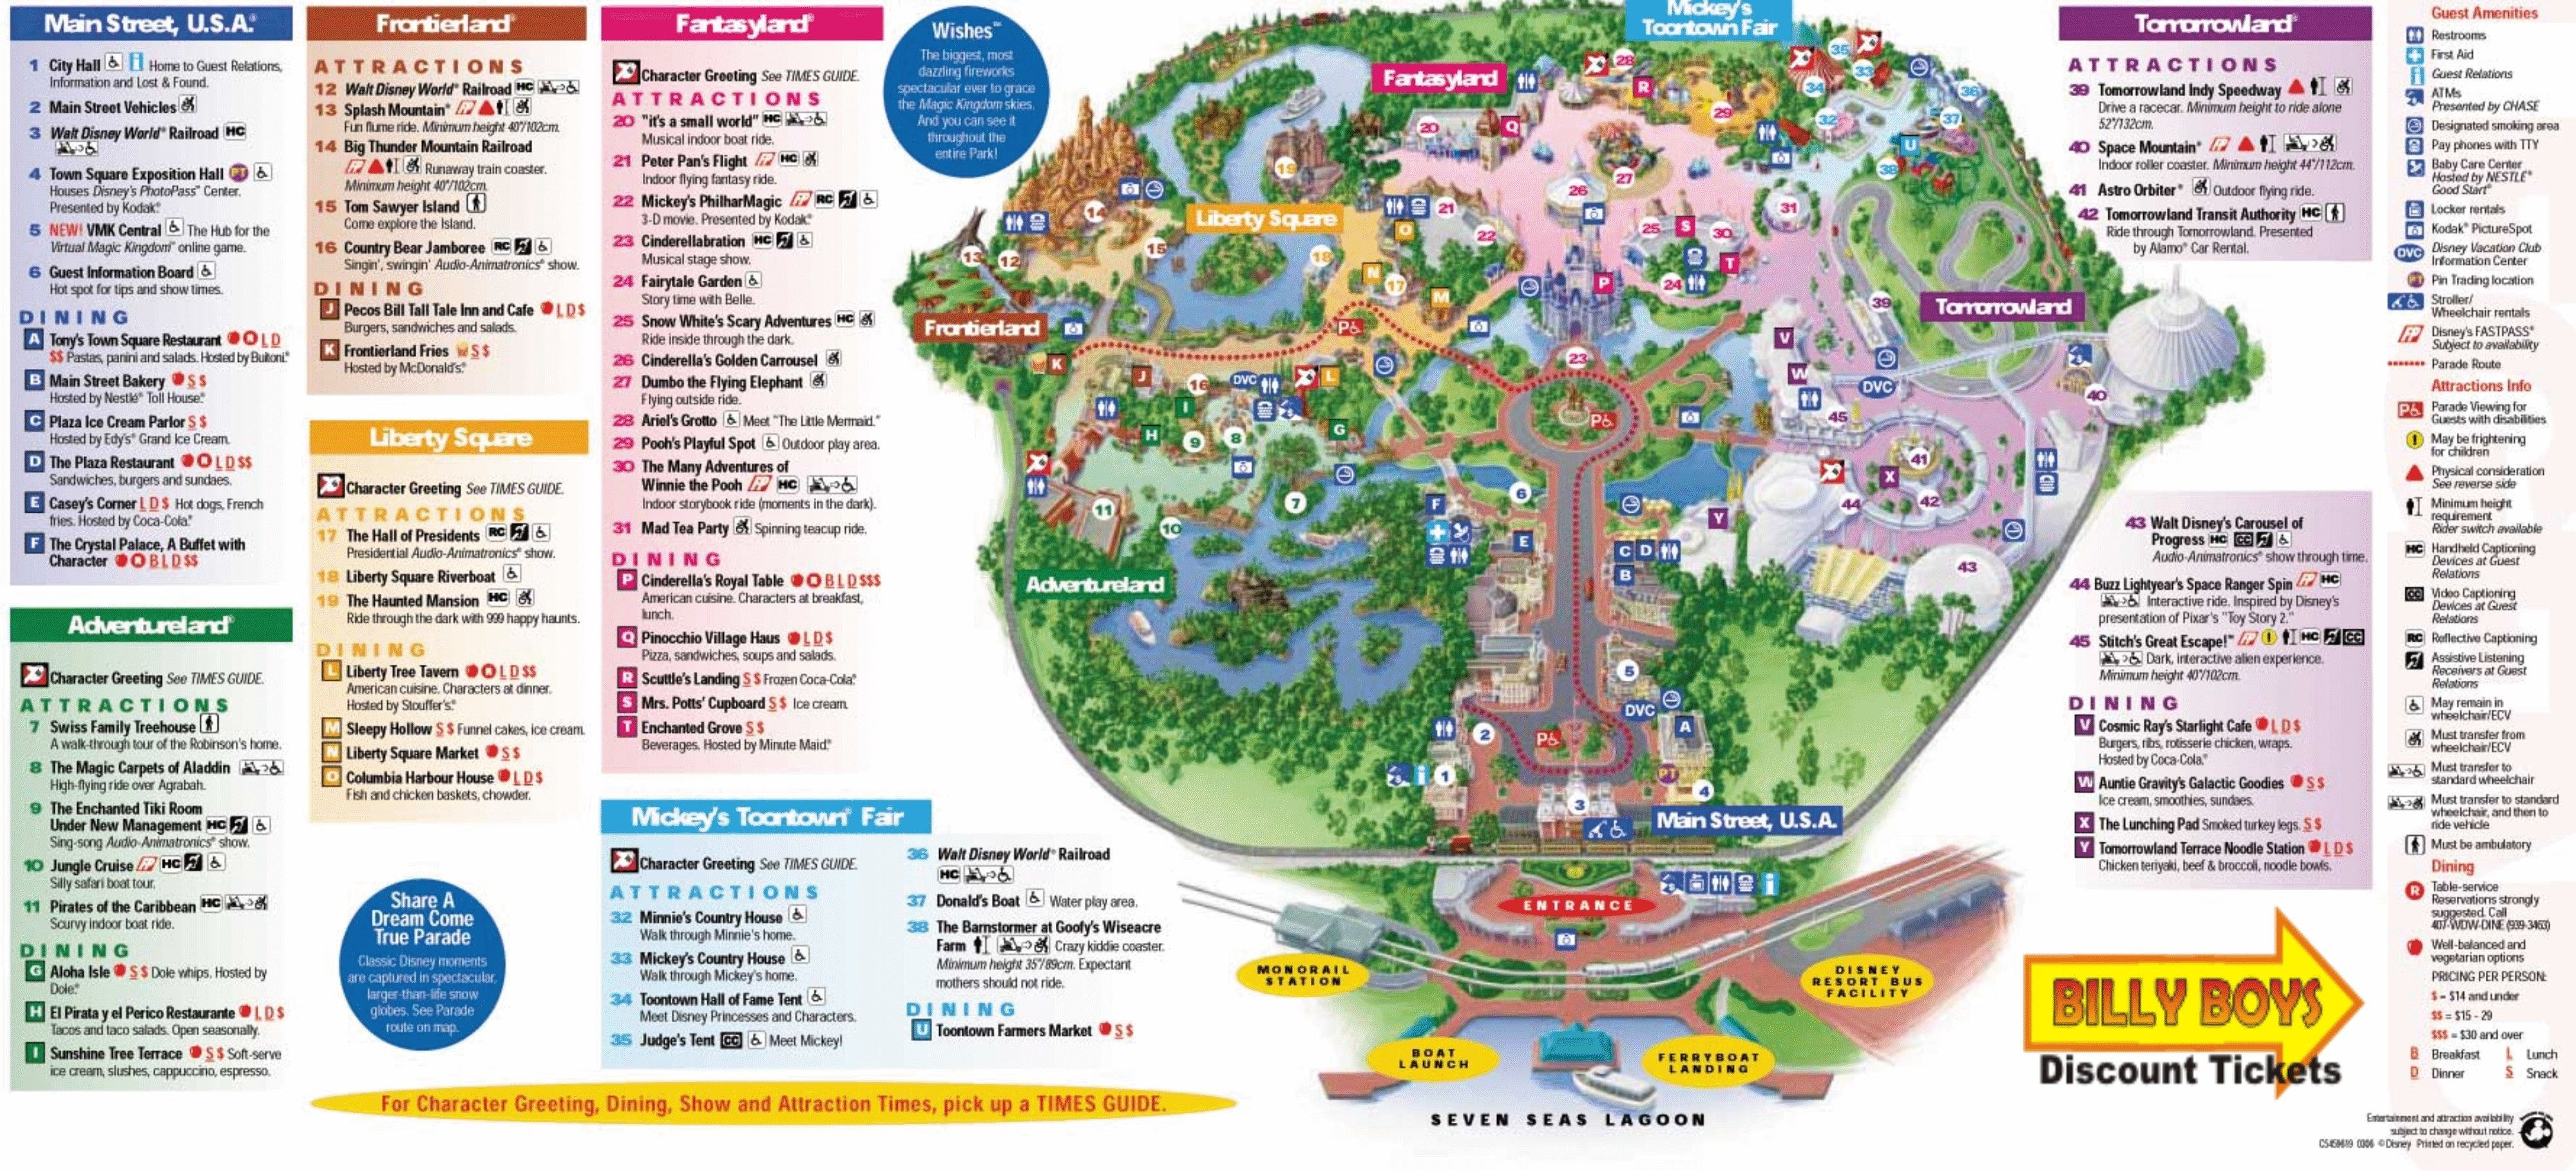 Orlando Tourist Map Pdf Walt Disney World Map Pdf #1 | Disney | Disney map, Disney world